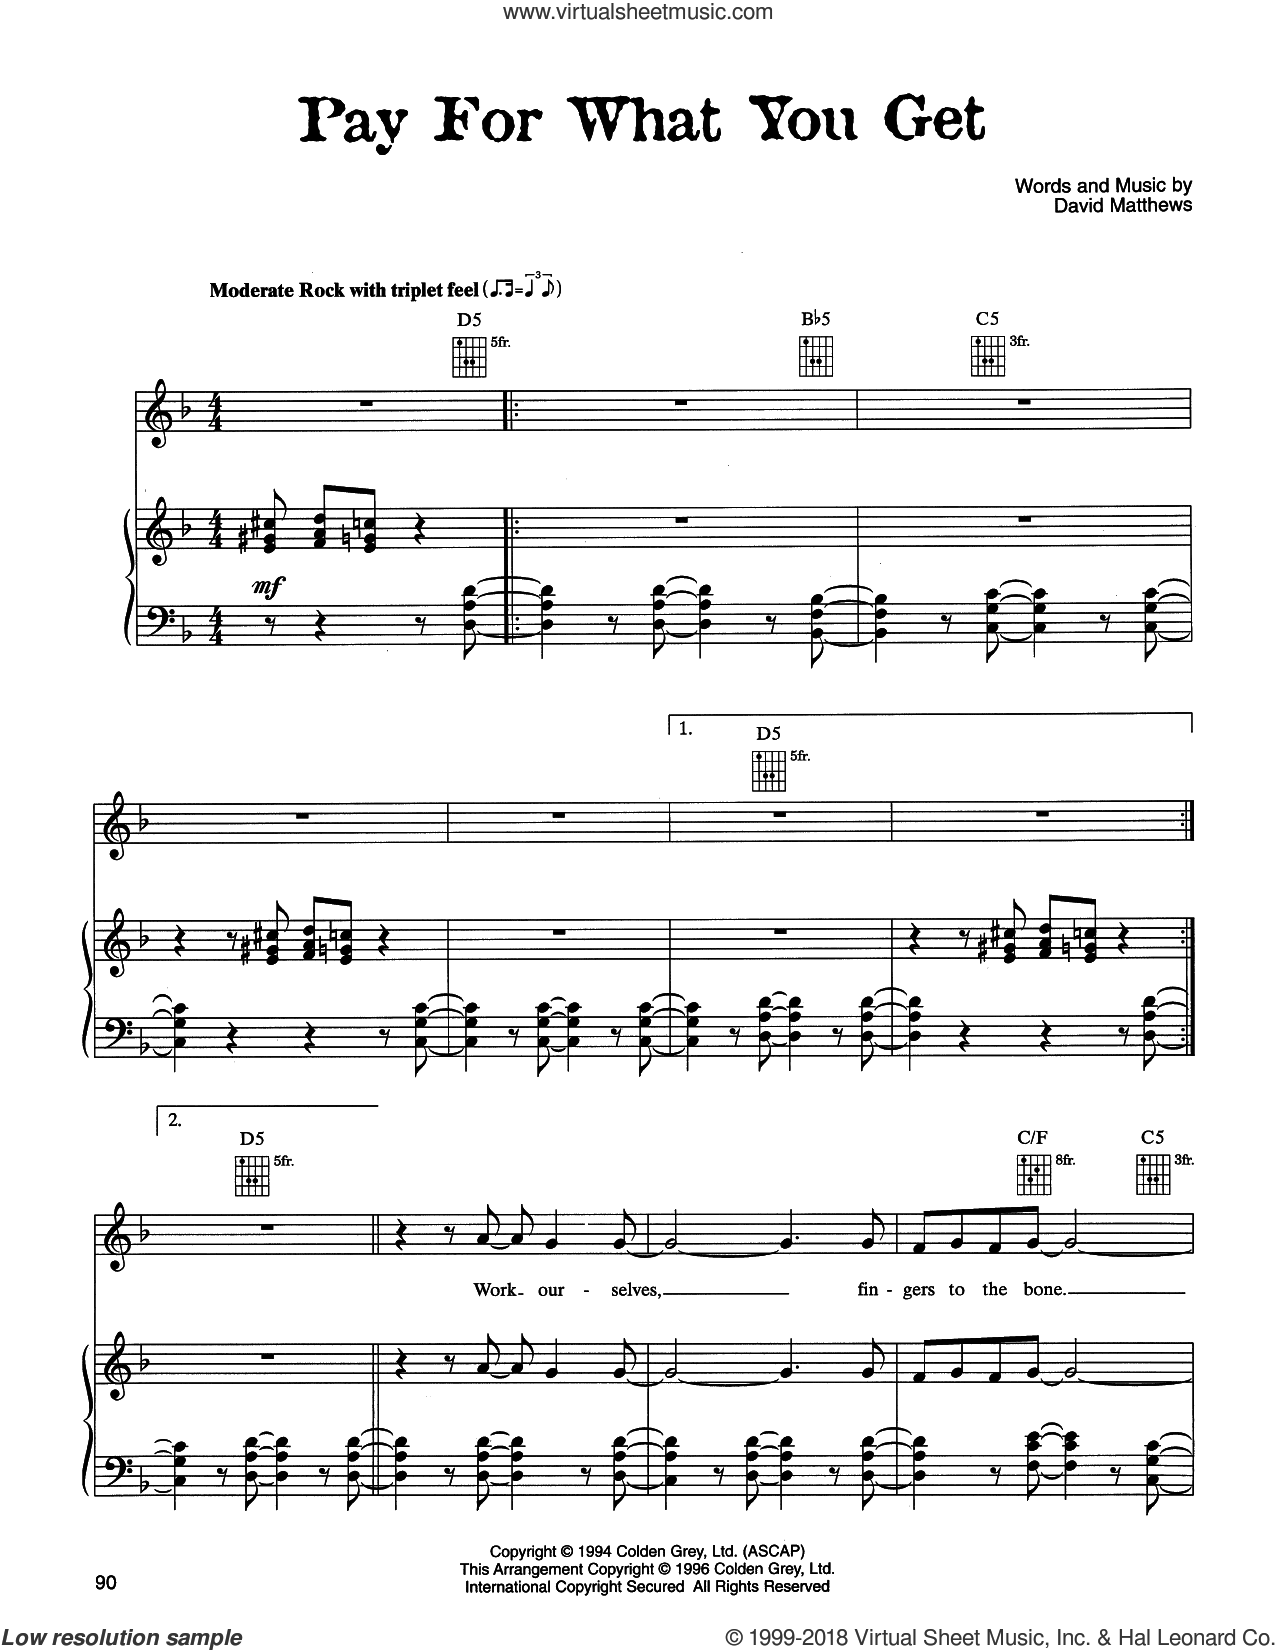 Pay For What You Get sheet music for voice, piano or guitar by Dave Matthews Band, intermediate